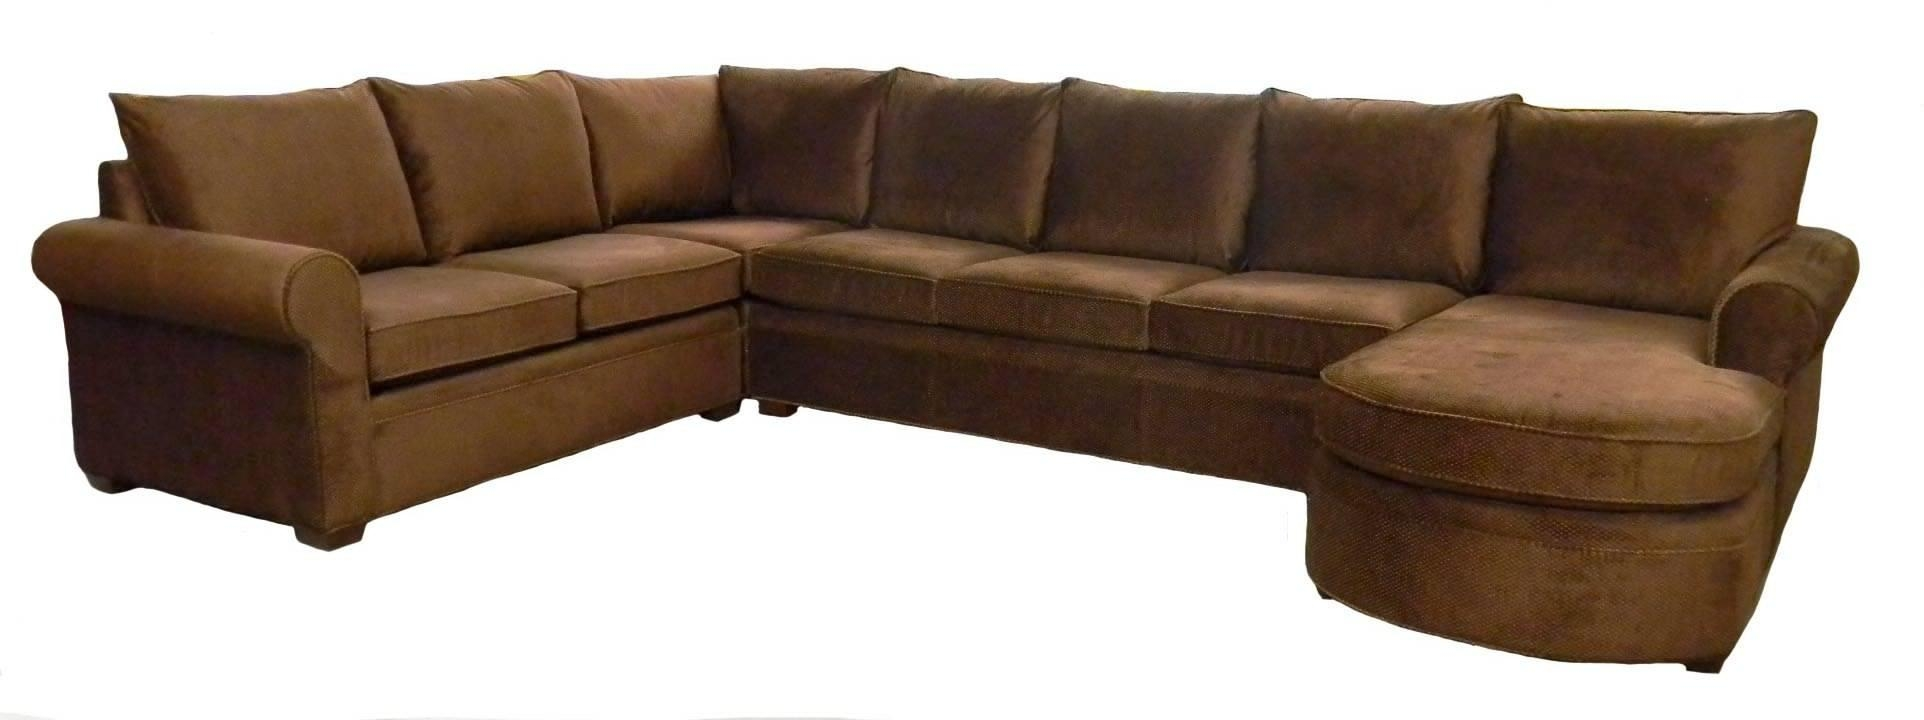 Leather Sectional Sofas Denver | Goodca Sofa Inside Denver Sectional (Image 9 of 15)